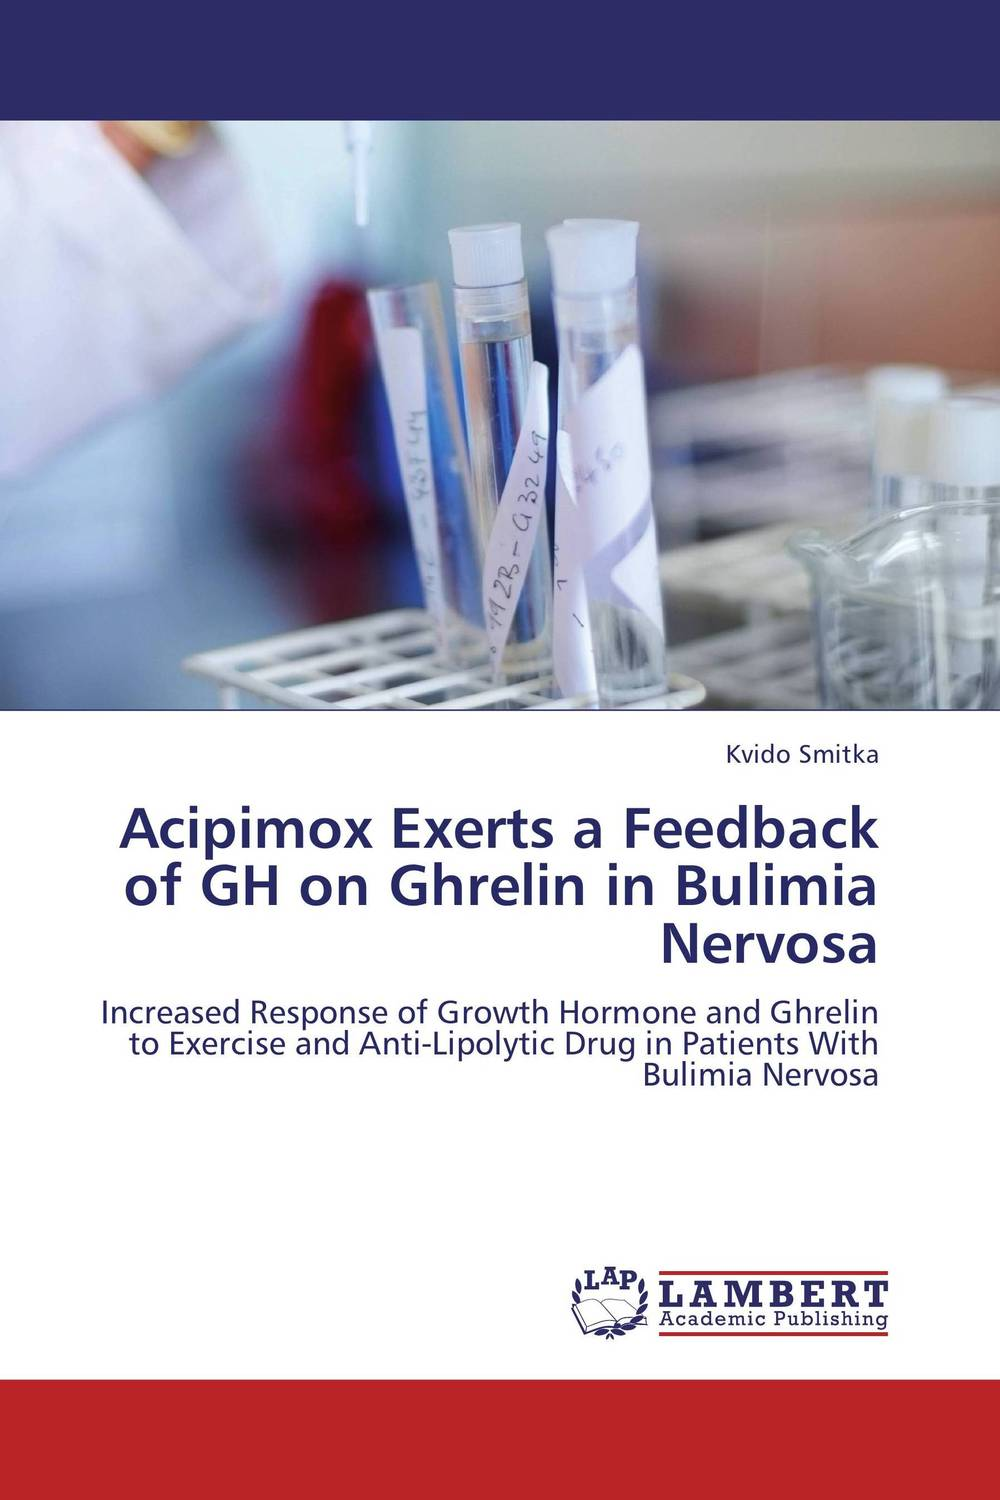 цены  Acipimox Exerts a Feedback of GH on Ghrelin in Bulimia Nervosa